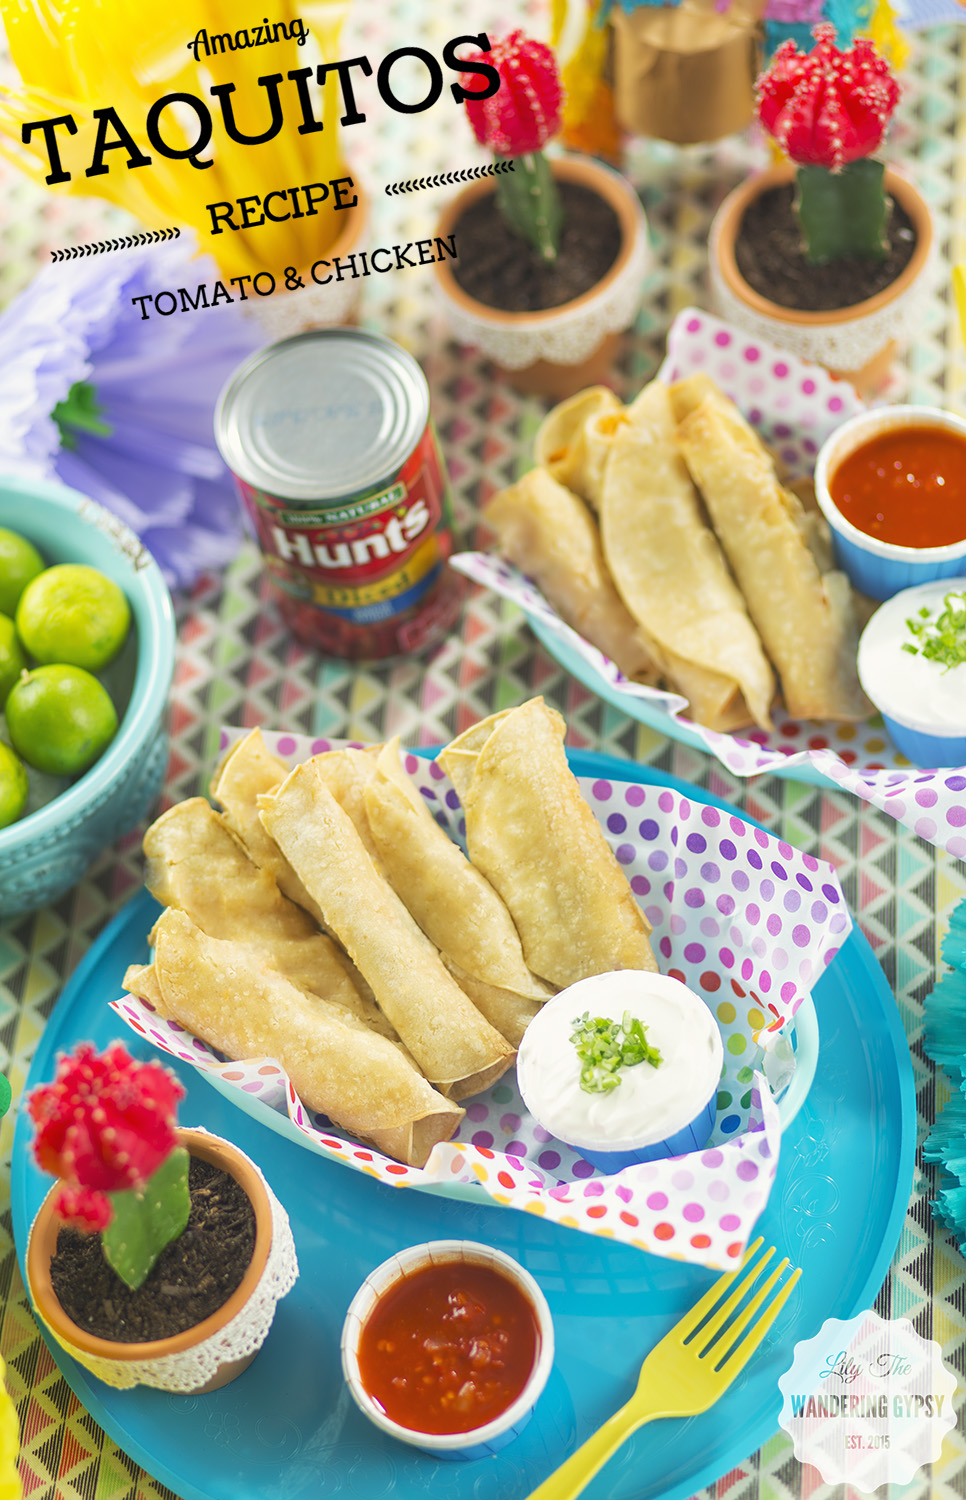 Serve with a side of sour cream, they are incredibly tasty!!!